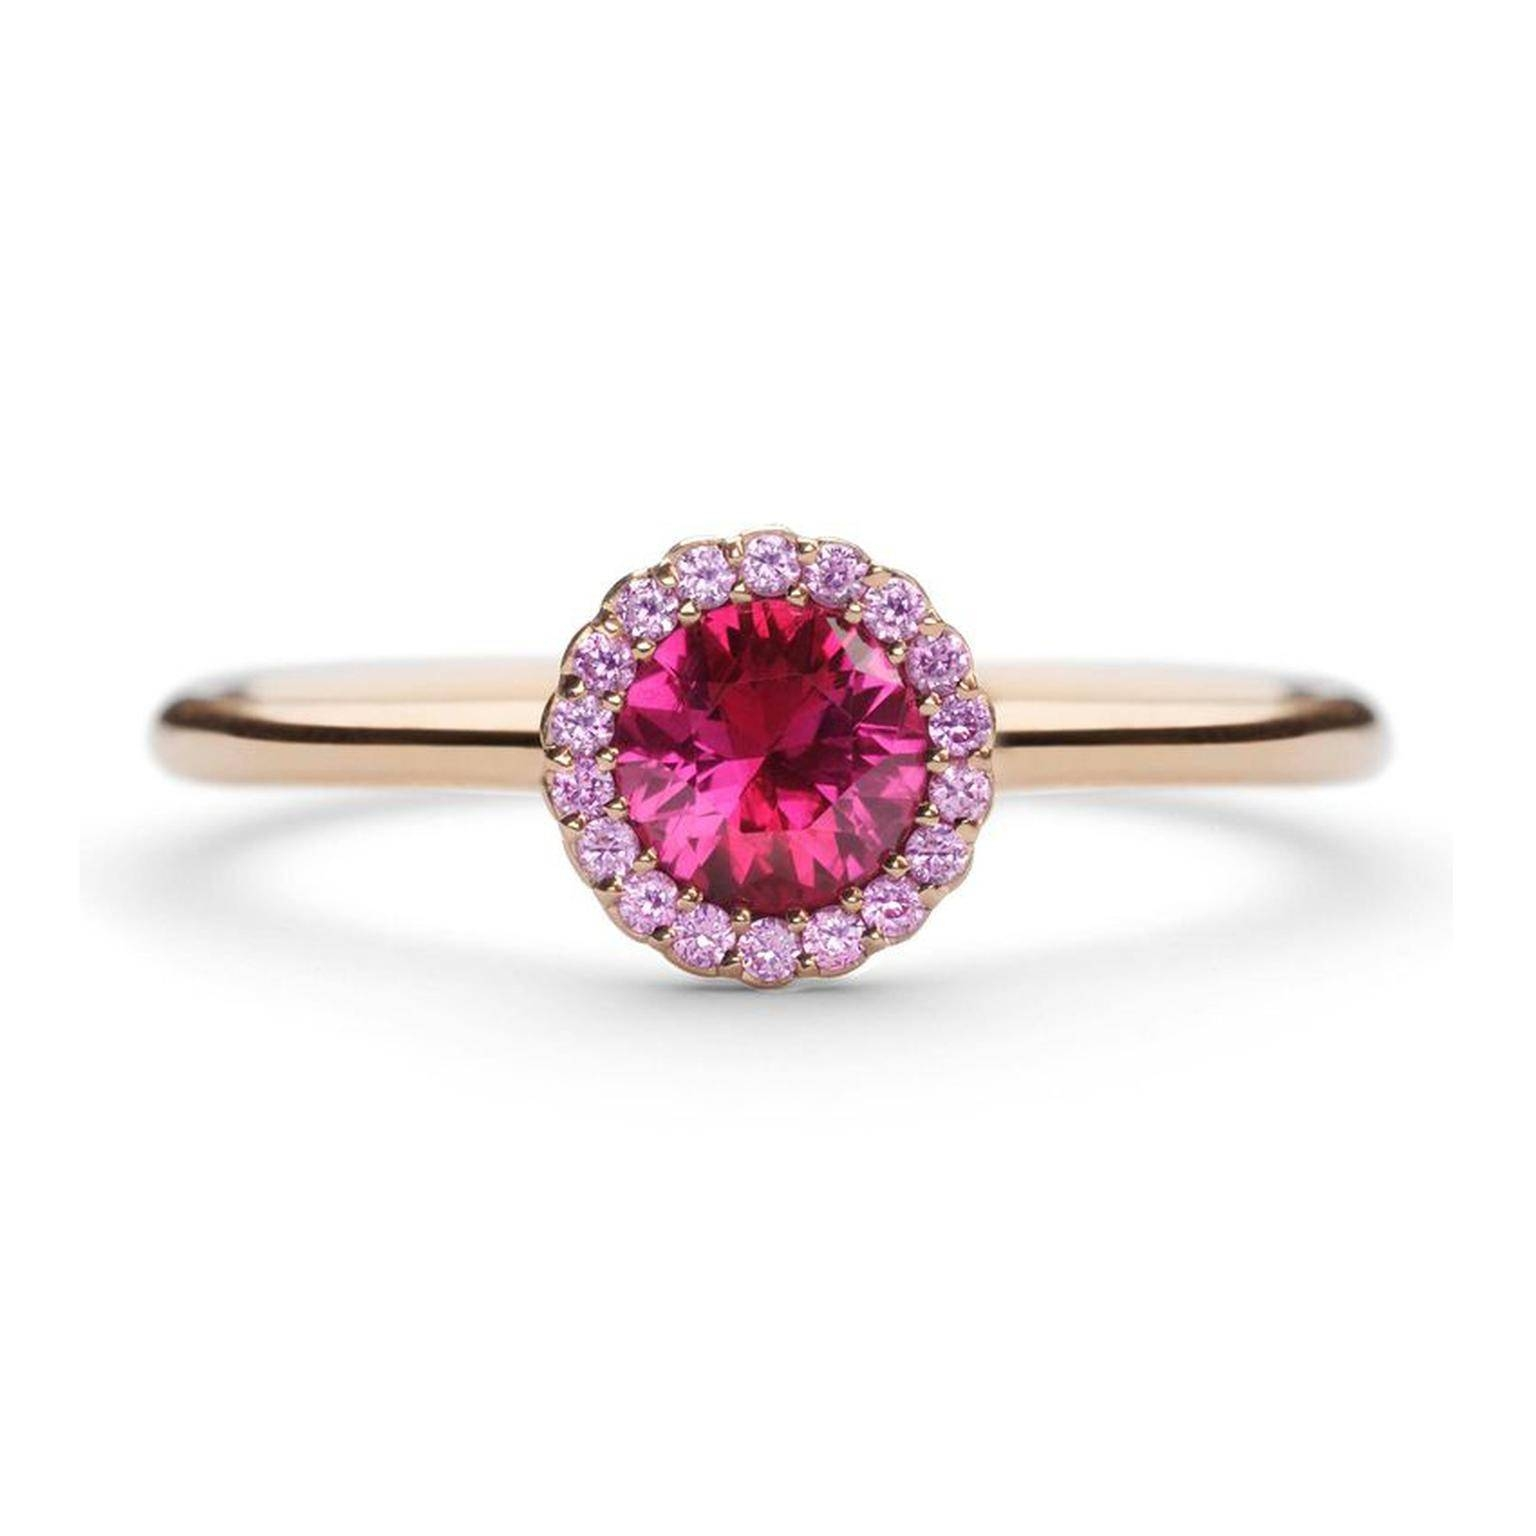 Cannelé Ruby And Pink Sapphire Engagement Ring | Andrew Geoghegan With Pink Sapphire Engagement Rings (Gallery 9 of 15)